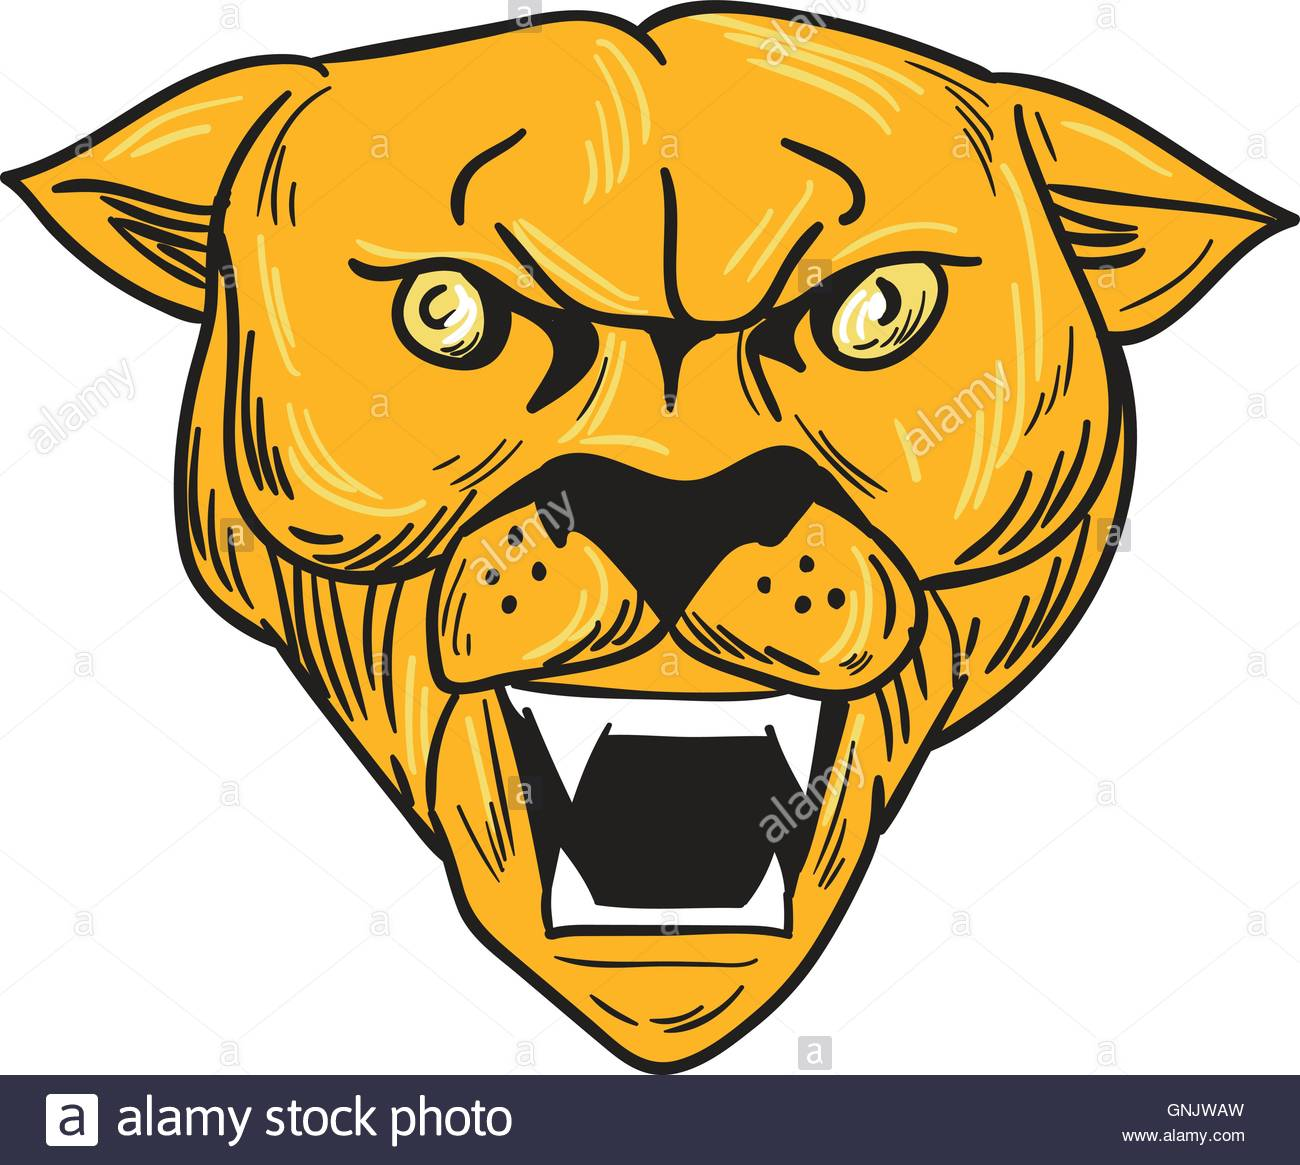 1300x1165 Angry Cougar Mountain Lion Head Drawing Stock Vector Art